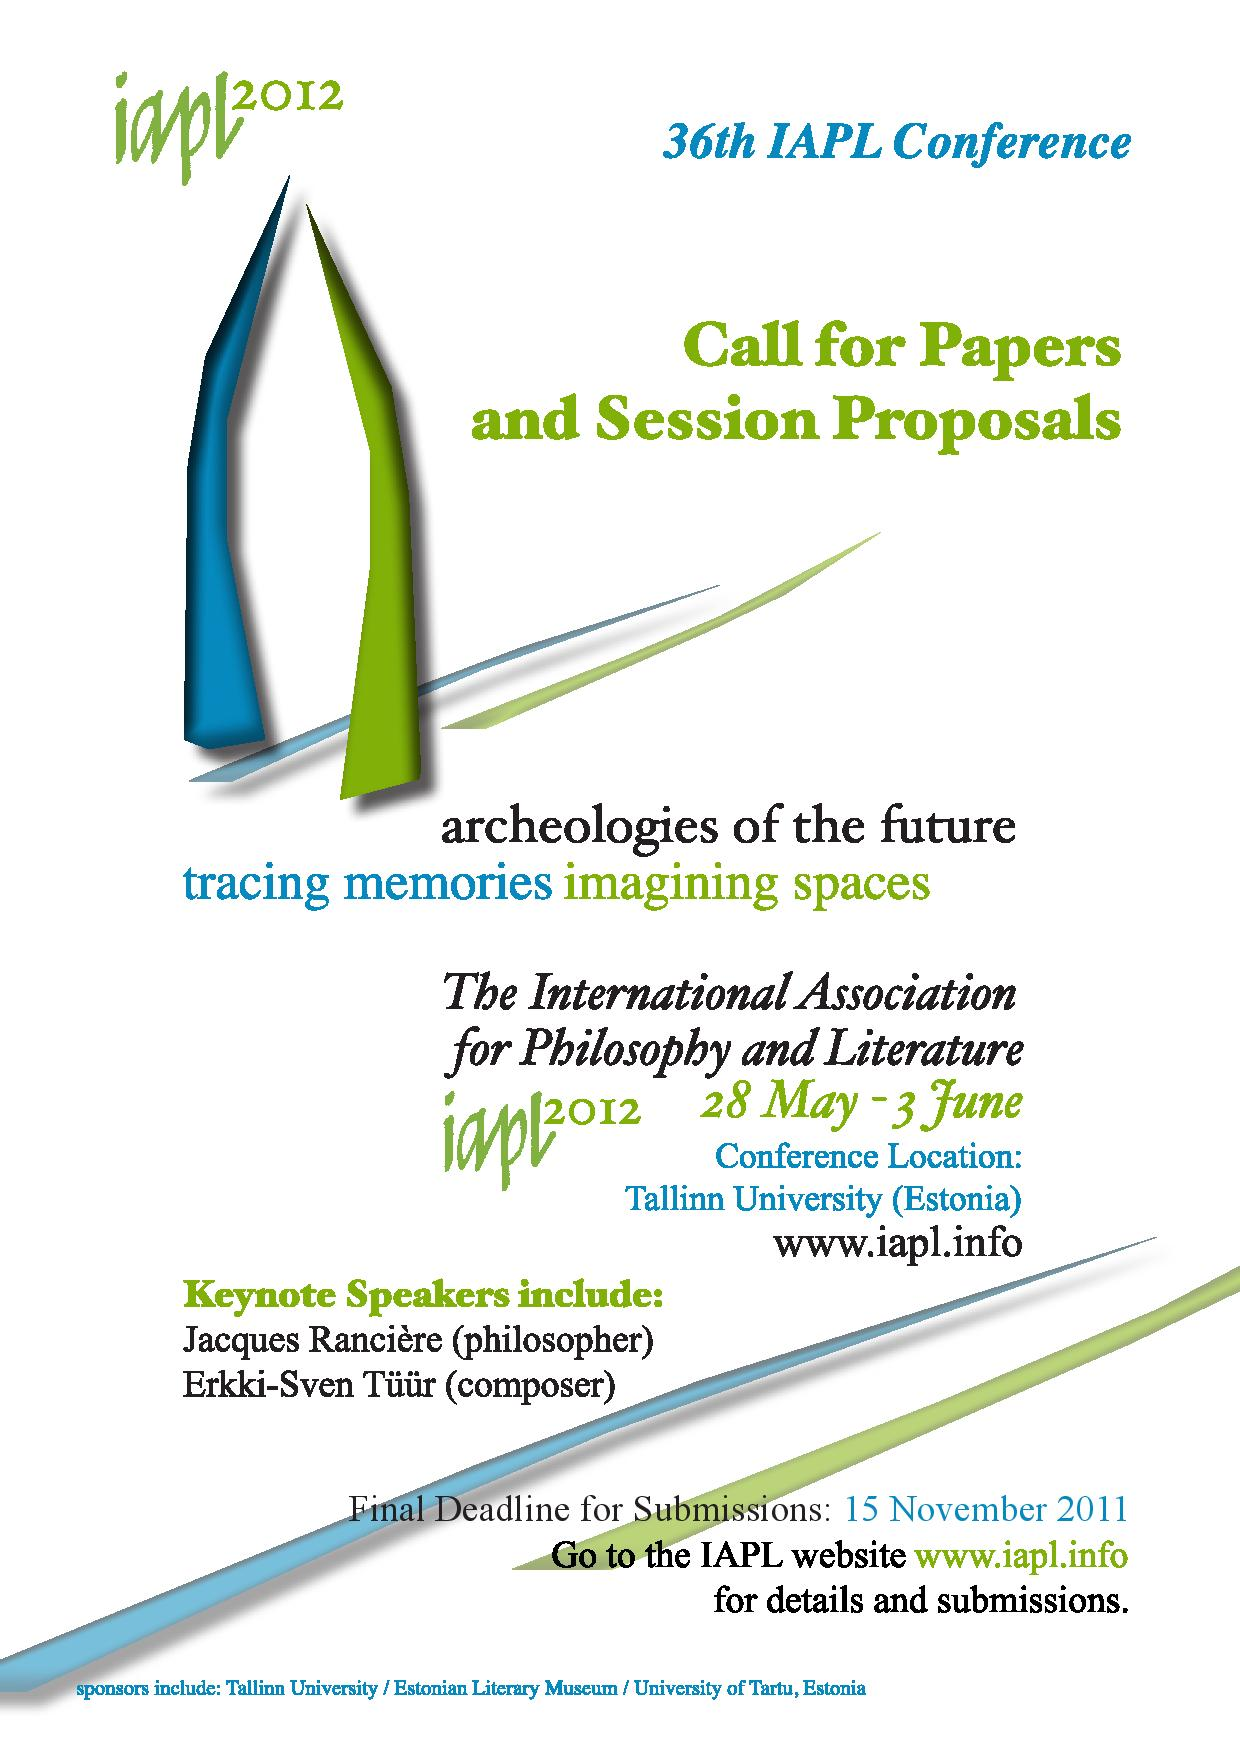 IAPL/36: Archaeologies of the Future